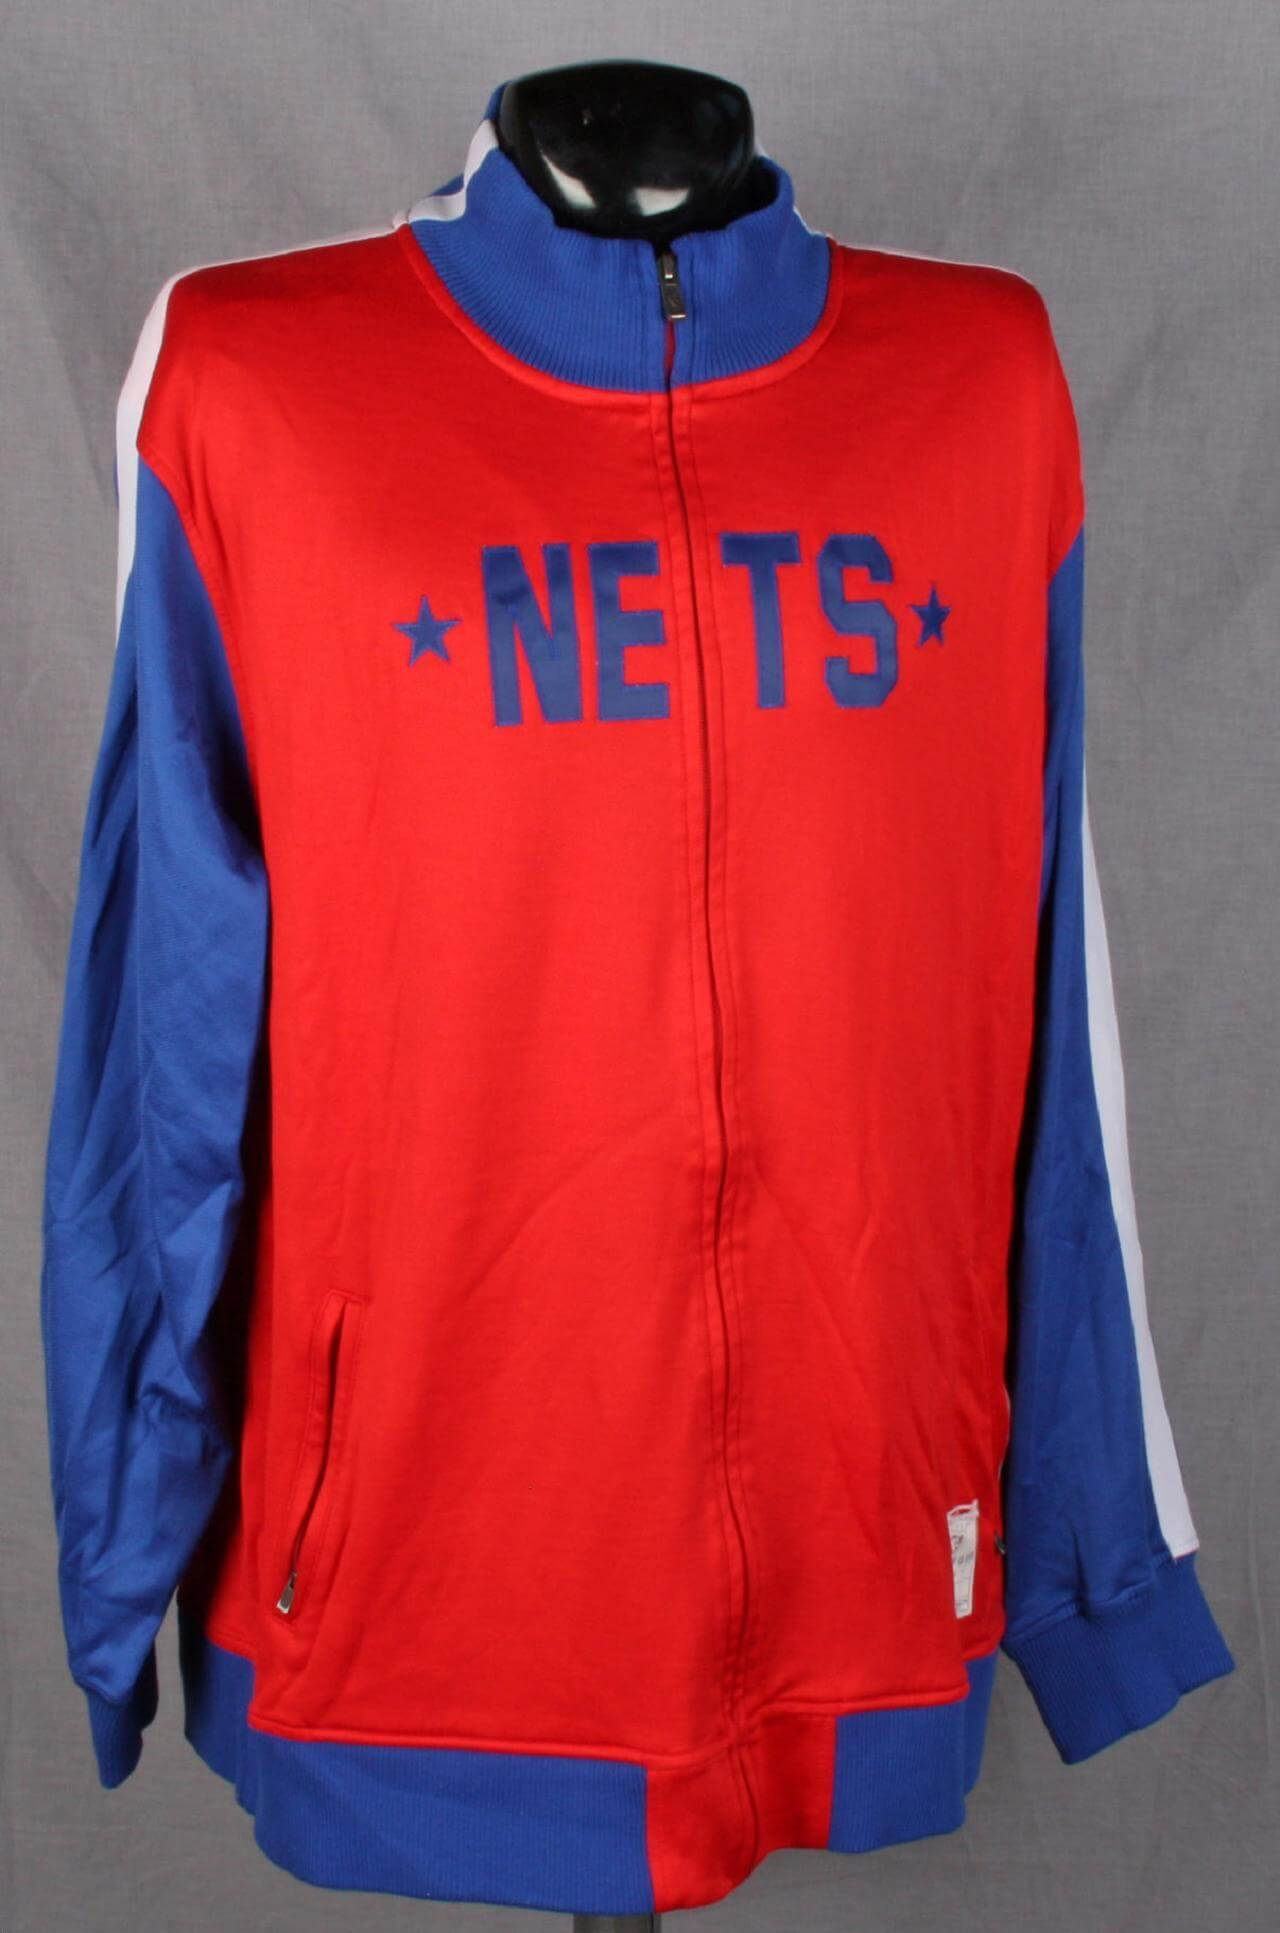 2005-2006 New Jersey Nets - Richard Jefferson Game Worn/Used Red Retro Hardwood Classics Nights Throwback Warmup Jacket